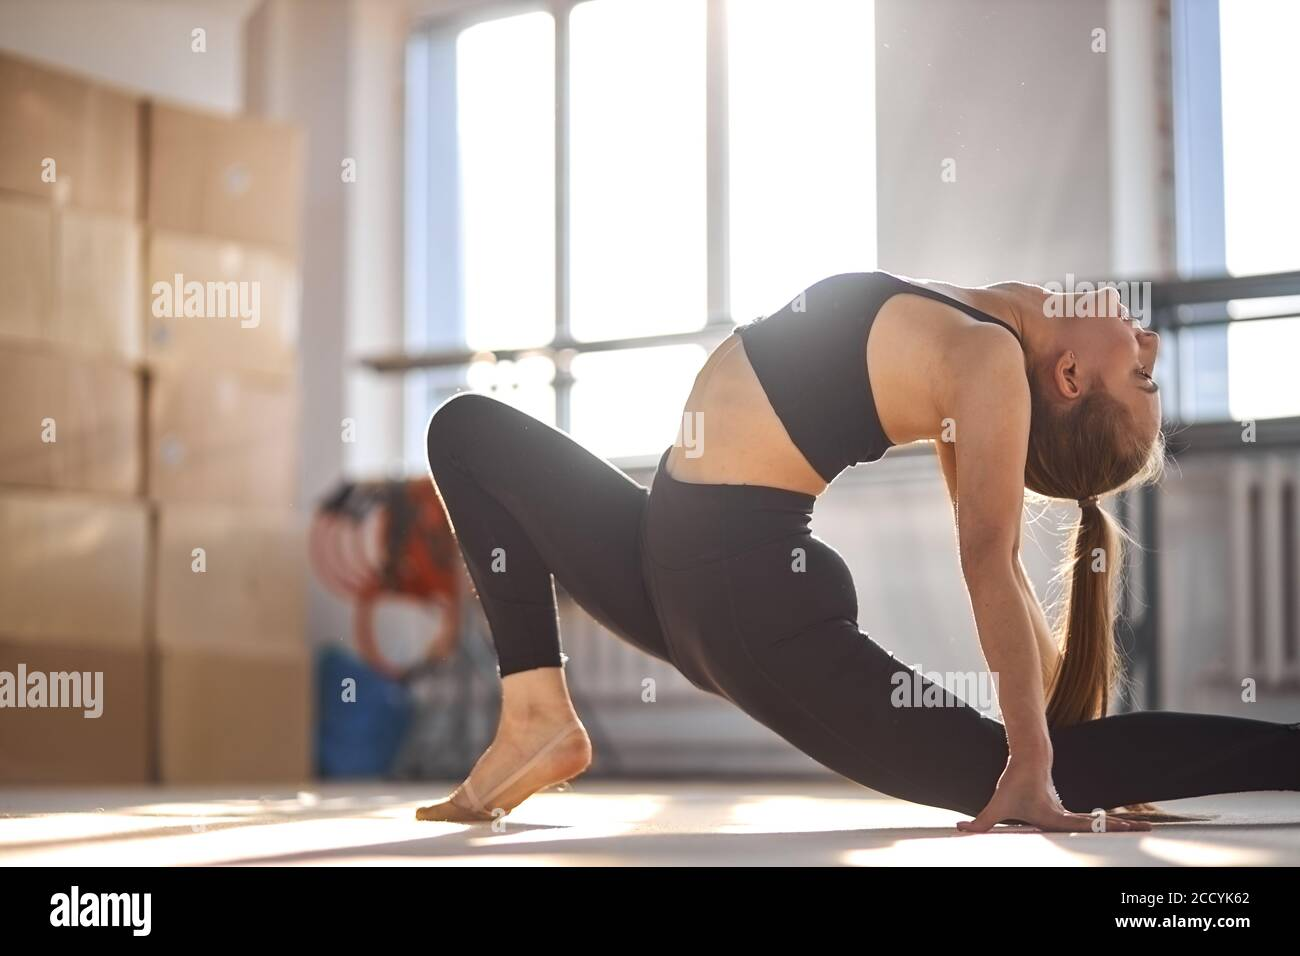 portrait of young charming gymnast bending crab, stretching body back intensively, looks up, health life style concept Stock Photo